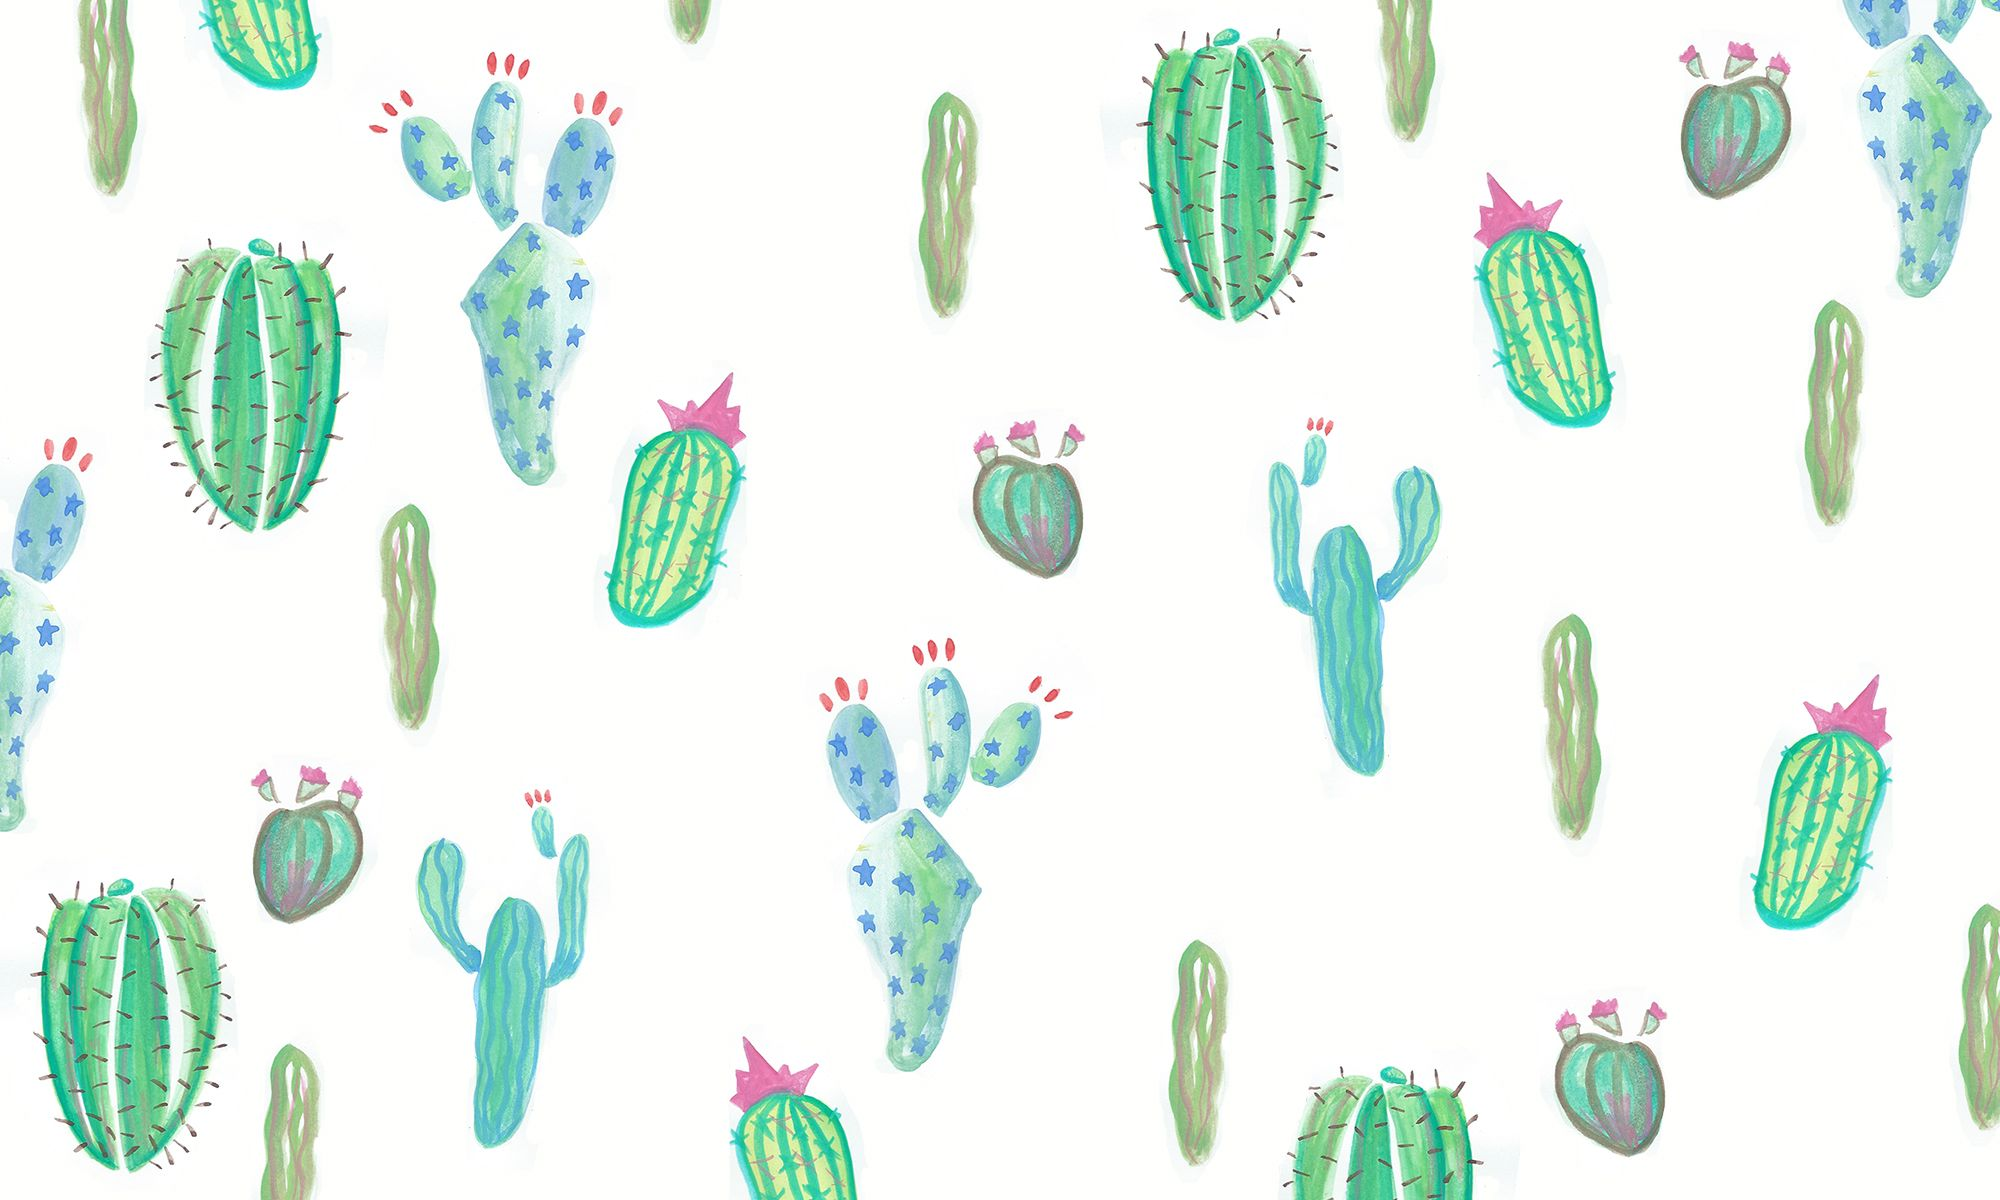 Tech Tuesday Cacti Party Wallpapers Wonder Forest Cactus Backgrounds Cactus Pictures Macbook Air Wallpaper